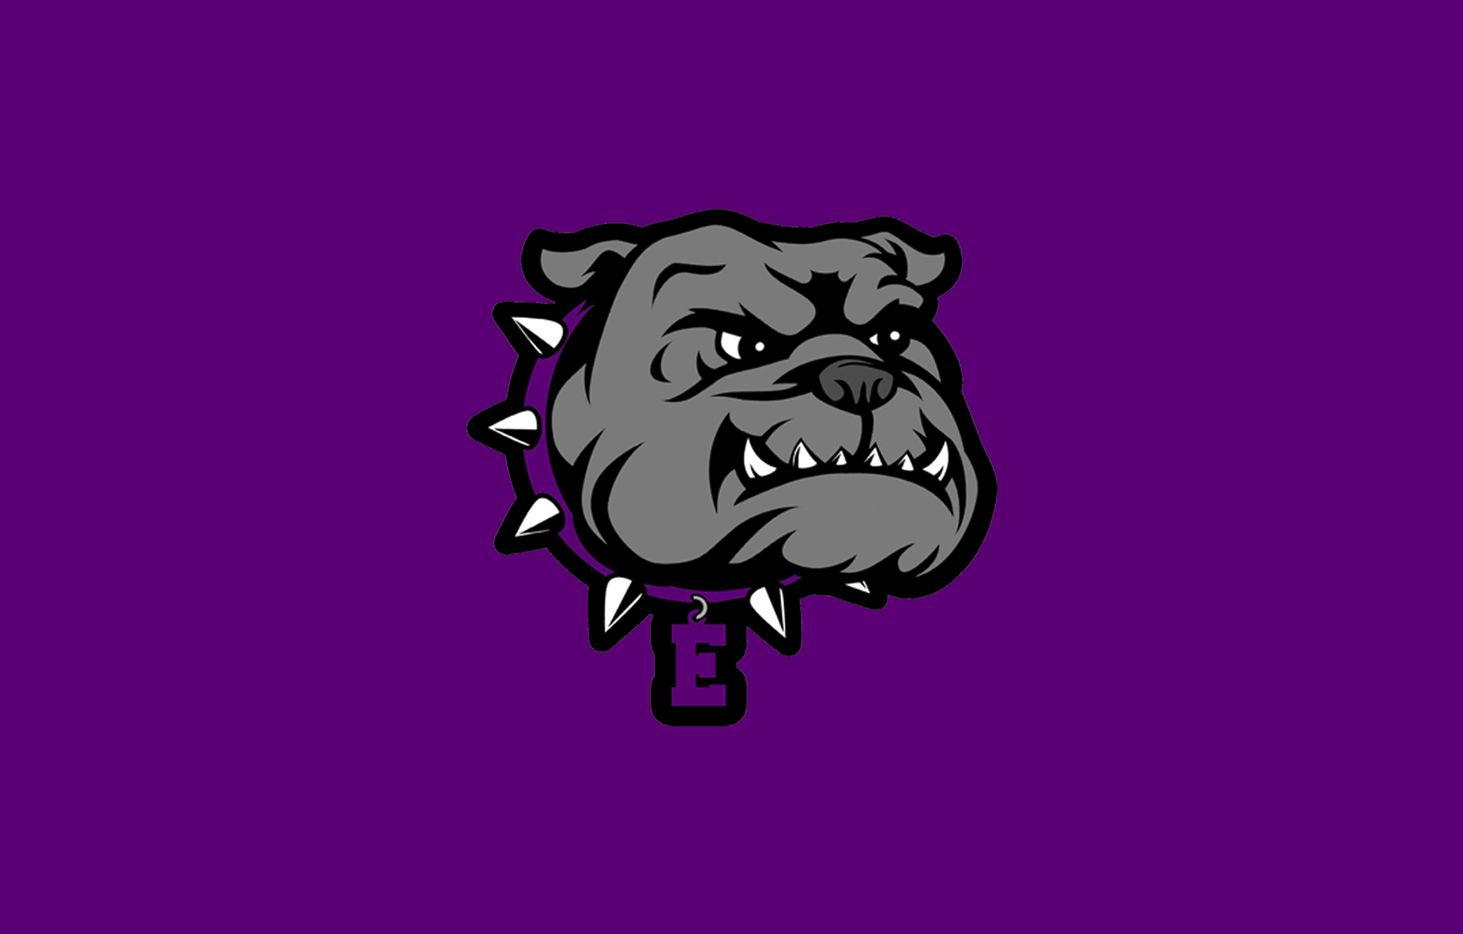 Everman logo.